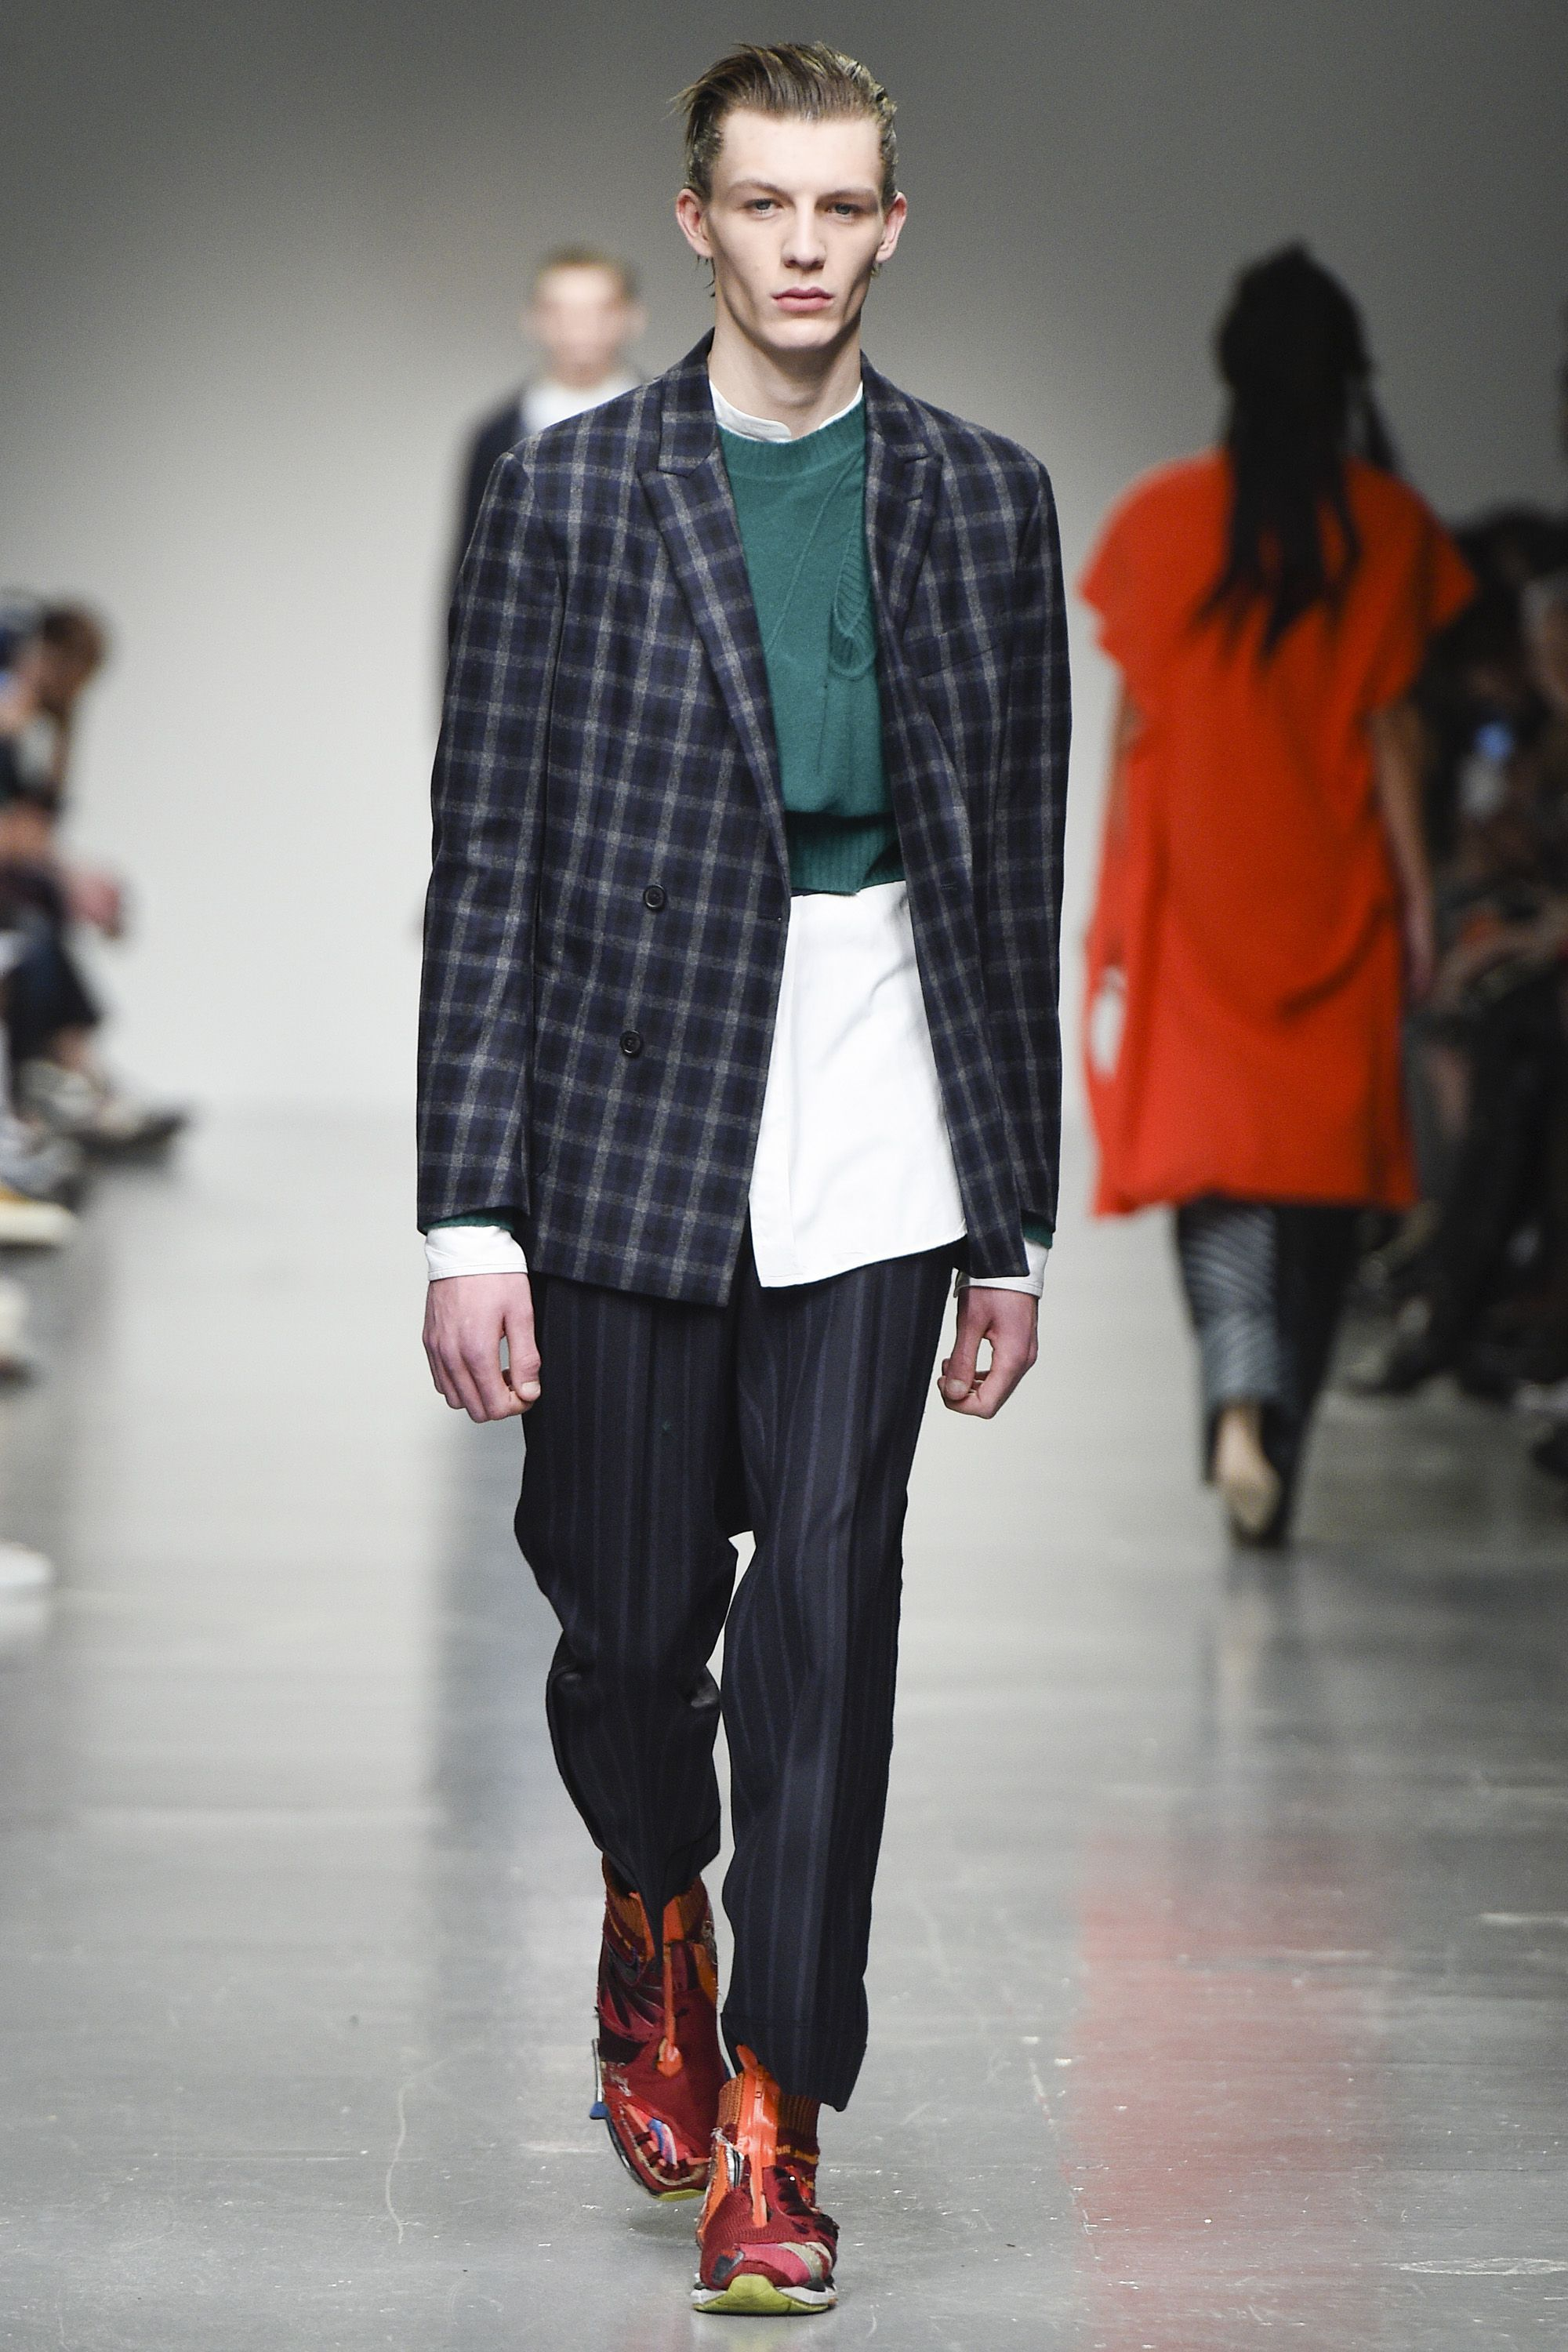 Caselyhayford autumnwinter menswear pinterest winter